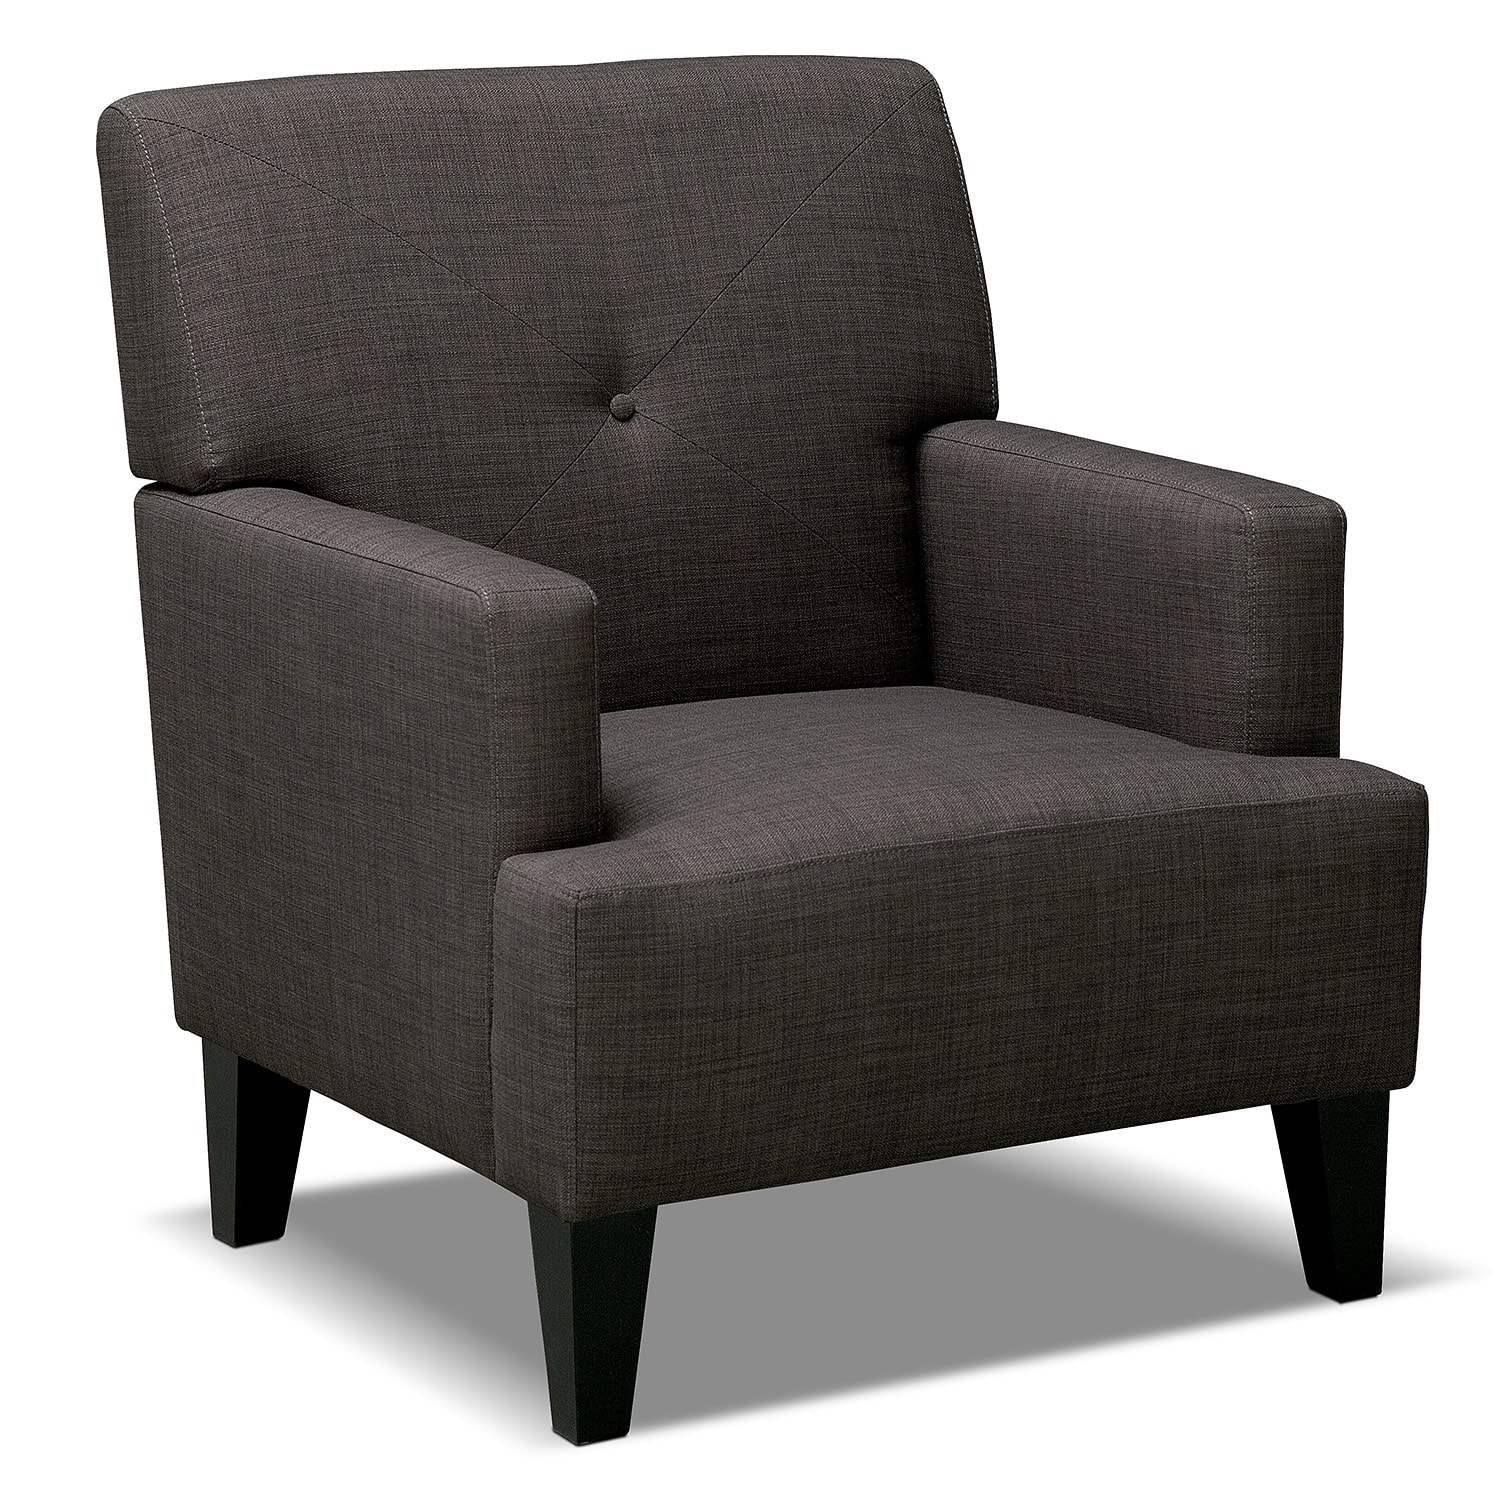 Avalon accent chair value city furniture for Living room chairs